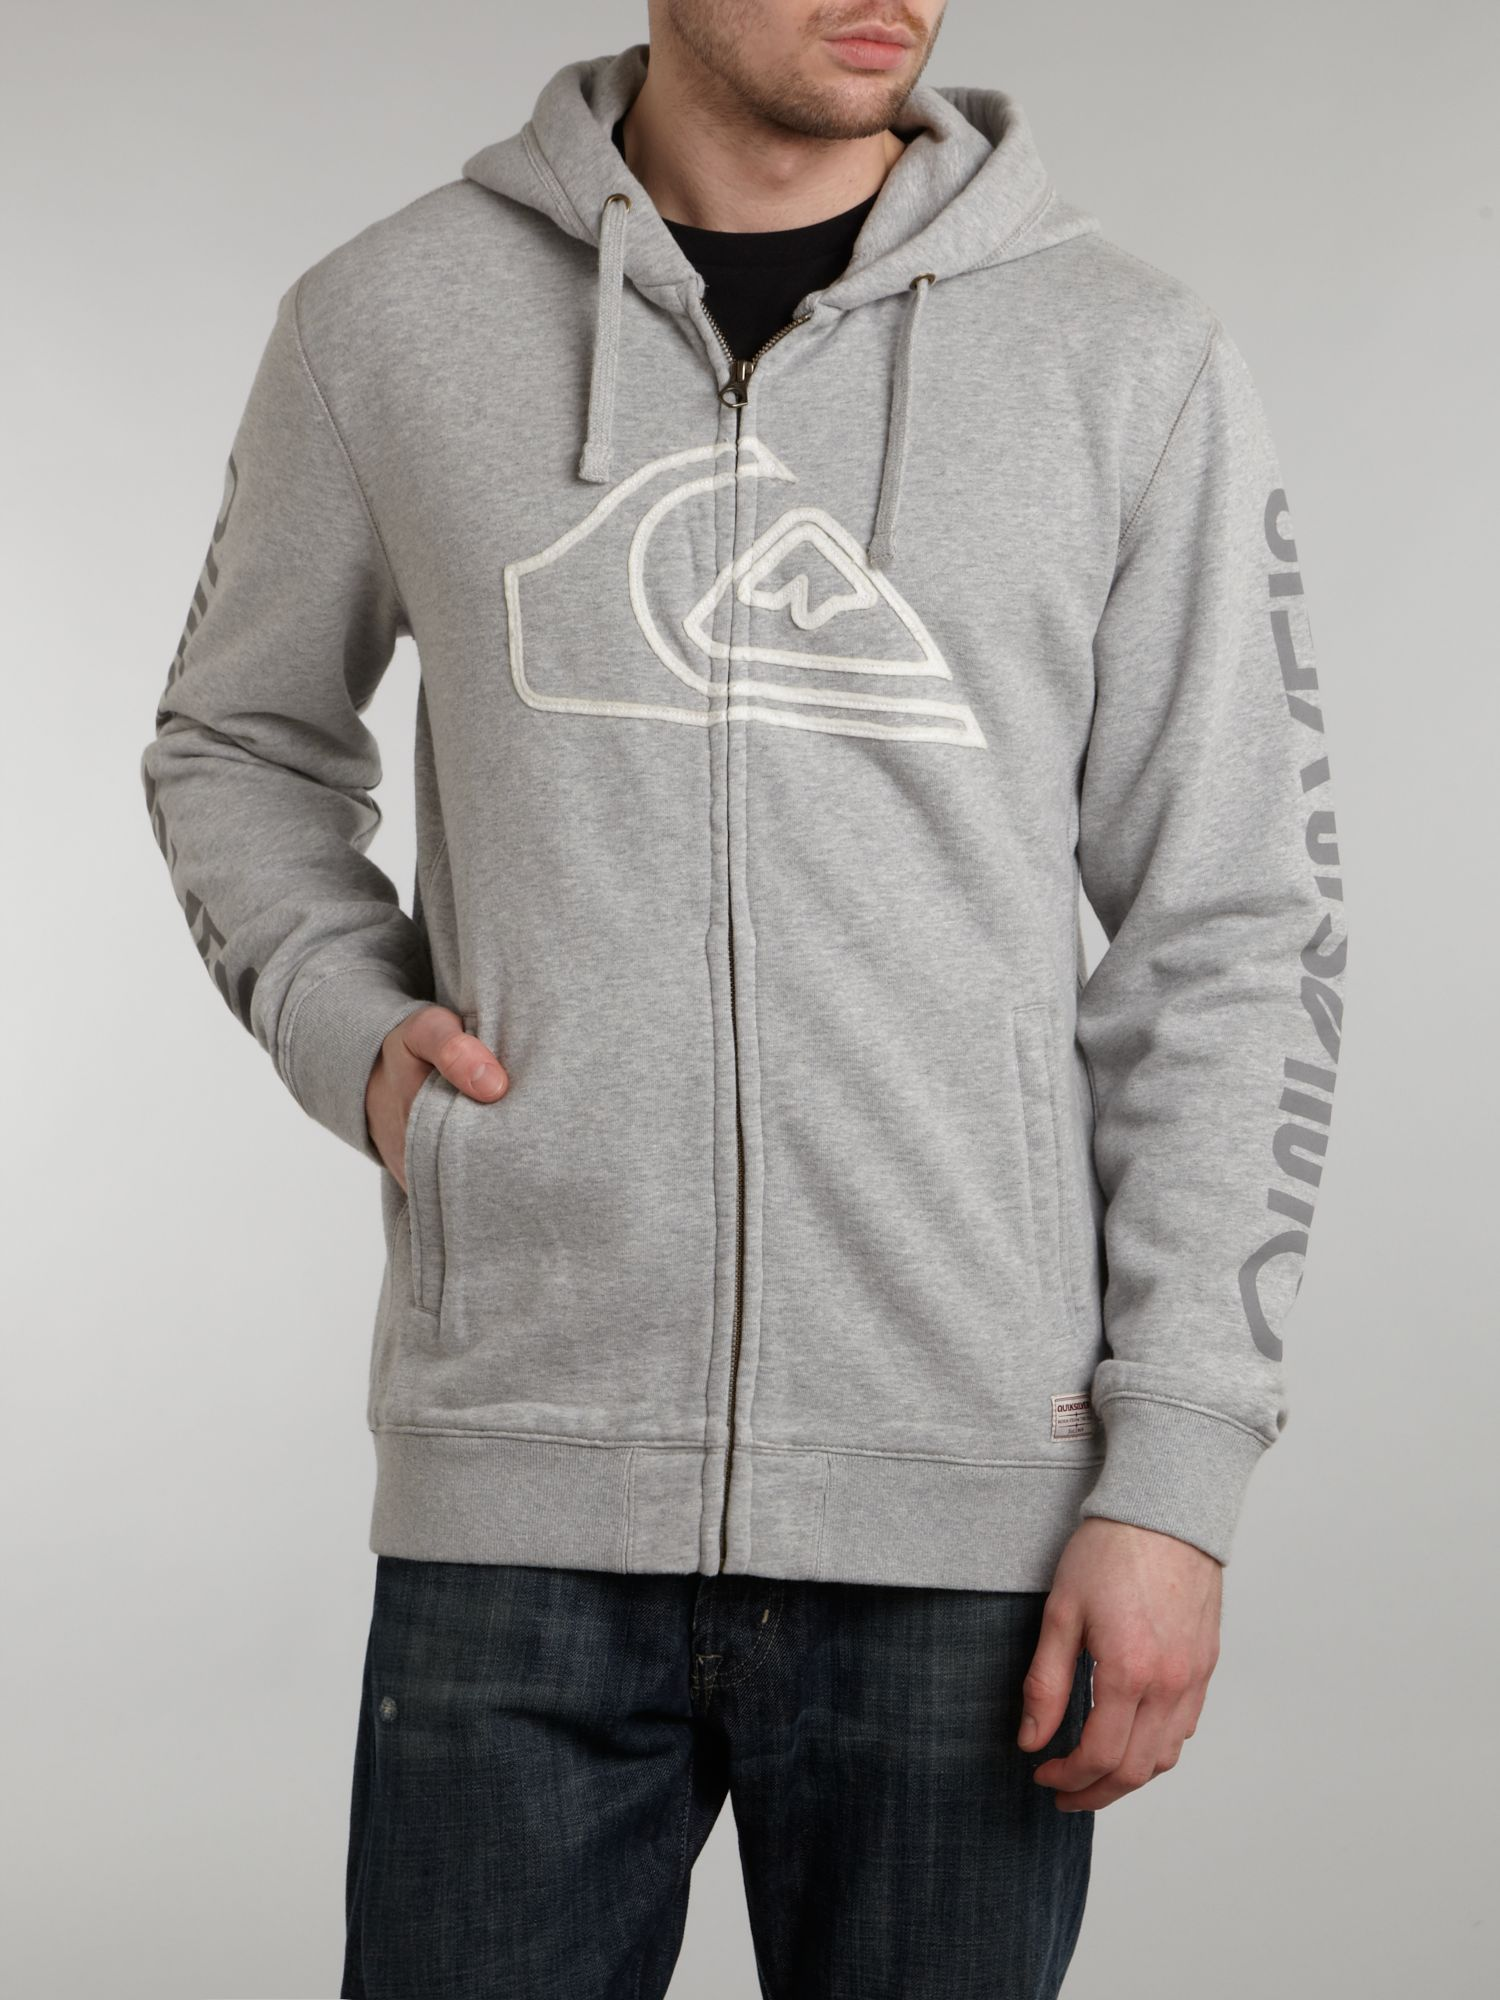 Full zip logo hoody